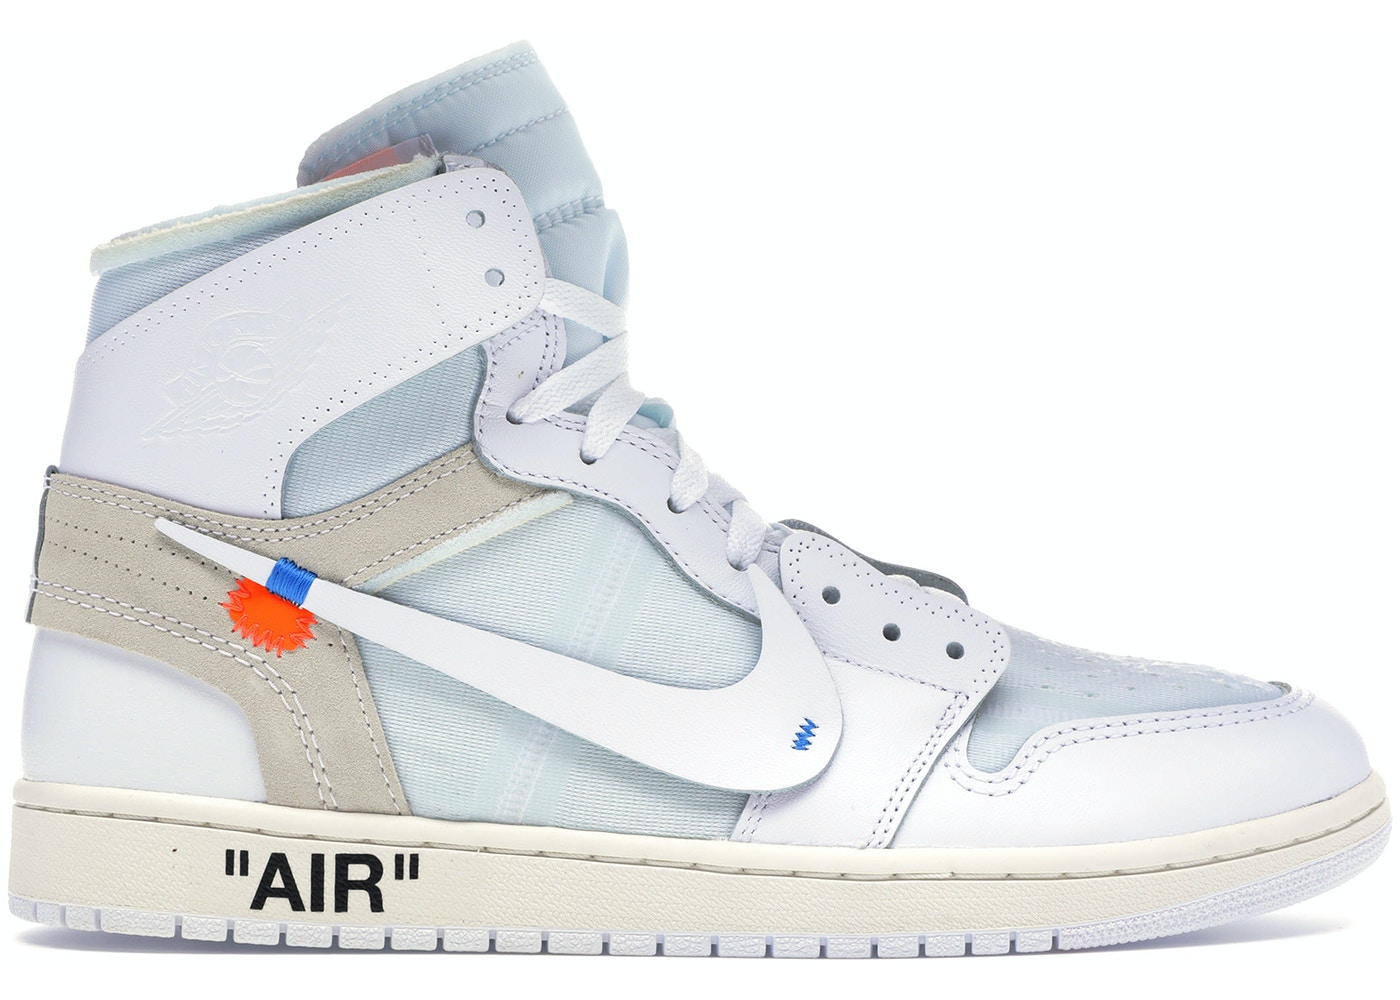 newest eeaab 32114 Jordan 1 Retro High Off-White White - AQ0818-100